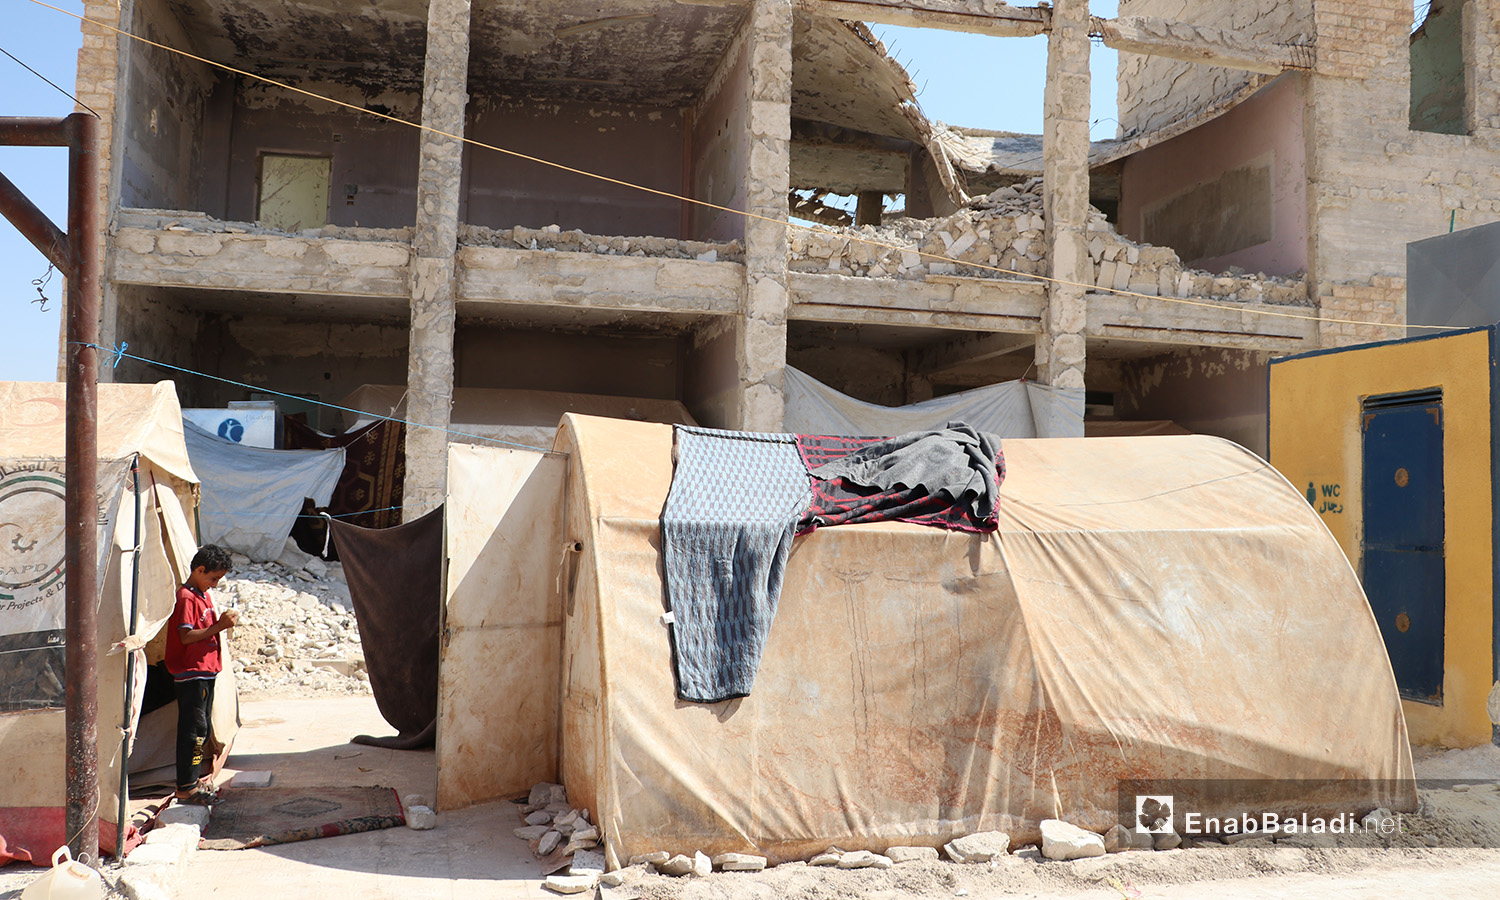 A makeshift tent set in front of a destroyed building in Qibtan Camp for internally displaced people (IDPs) near Akhtarin town in northern Aleppo countryside – 17 July 2020 (Enab Baladi / Asim Melhem)